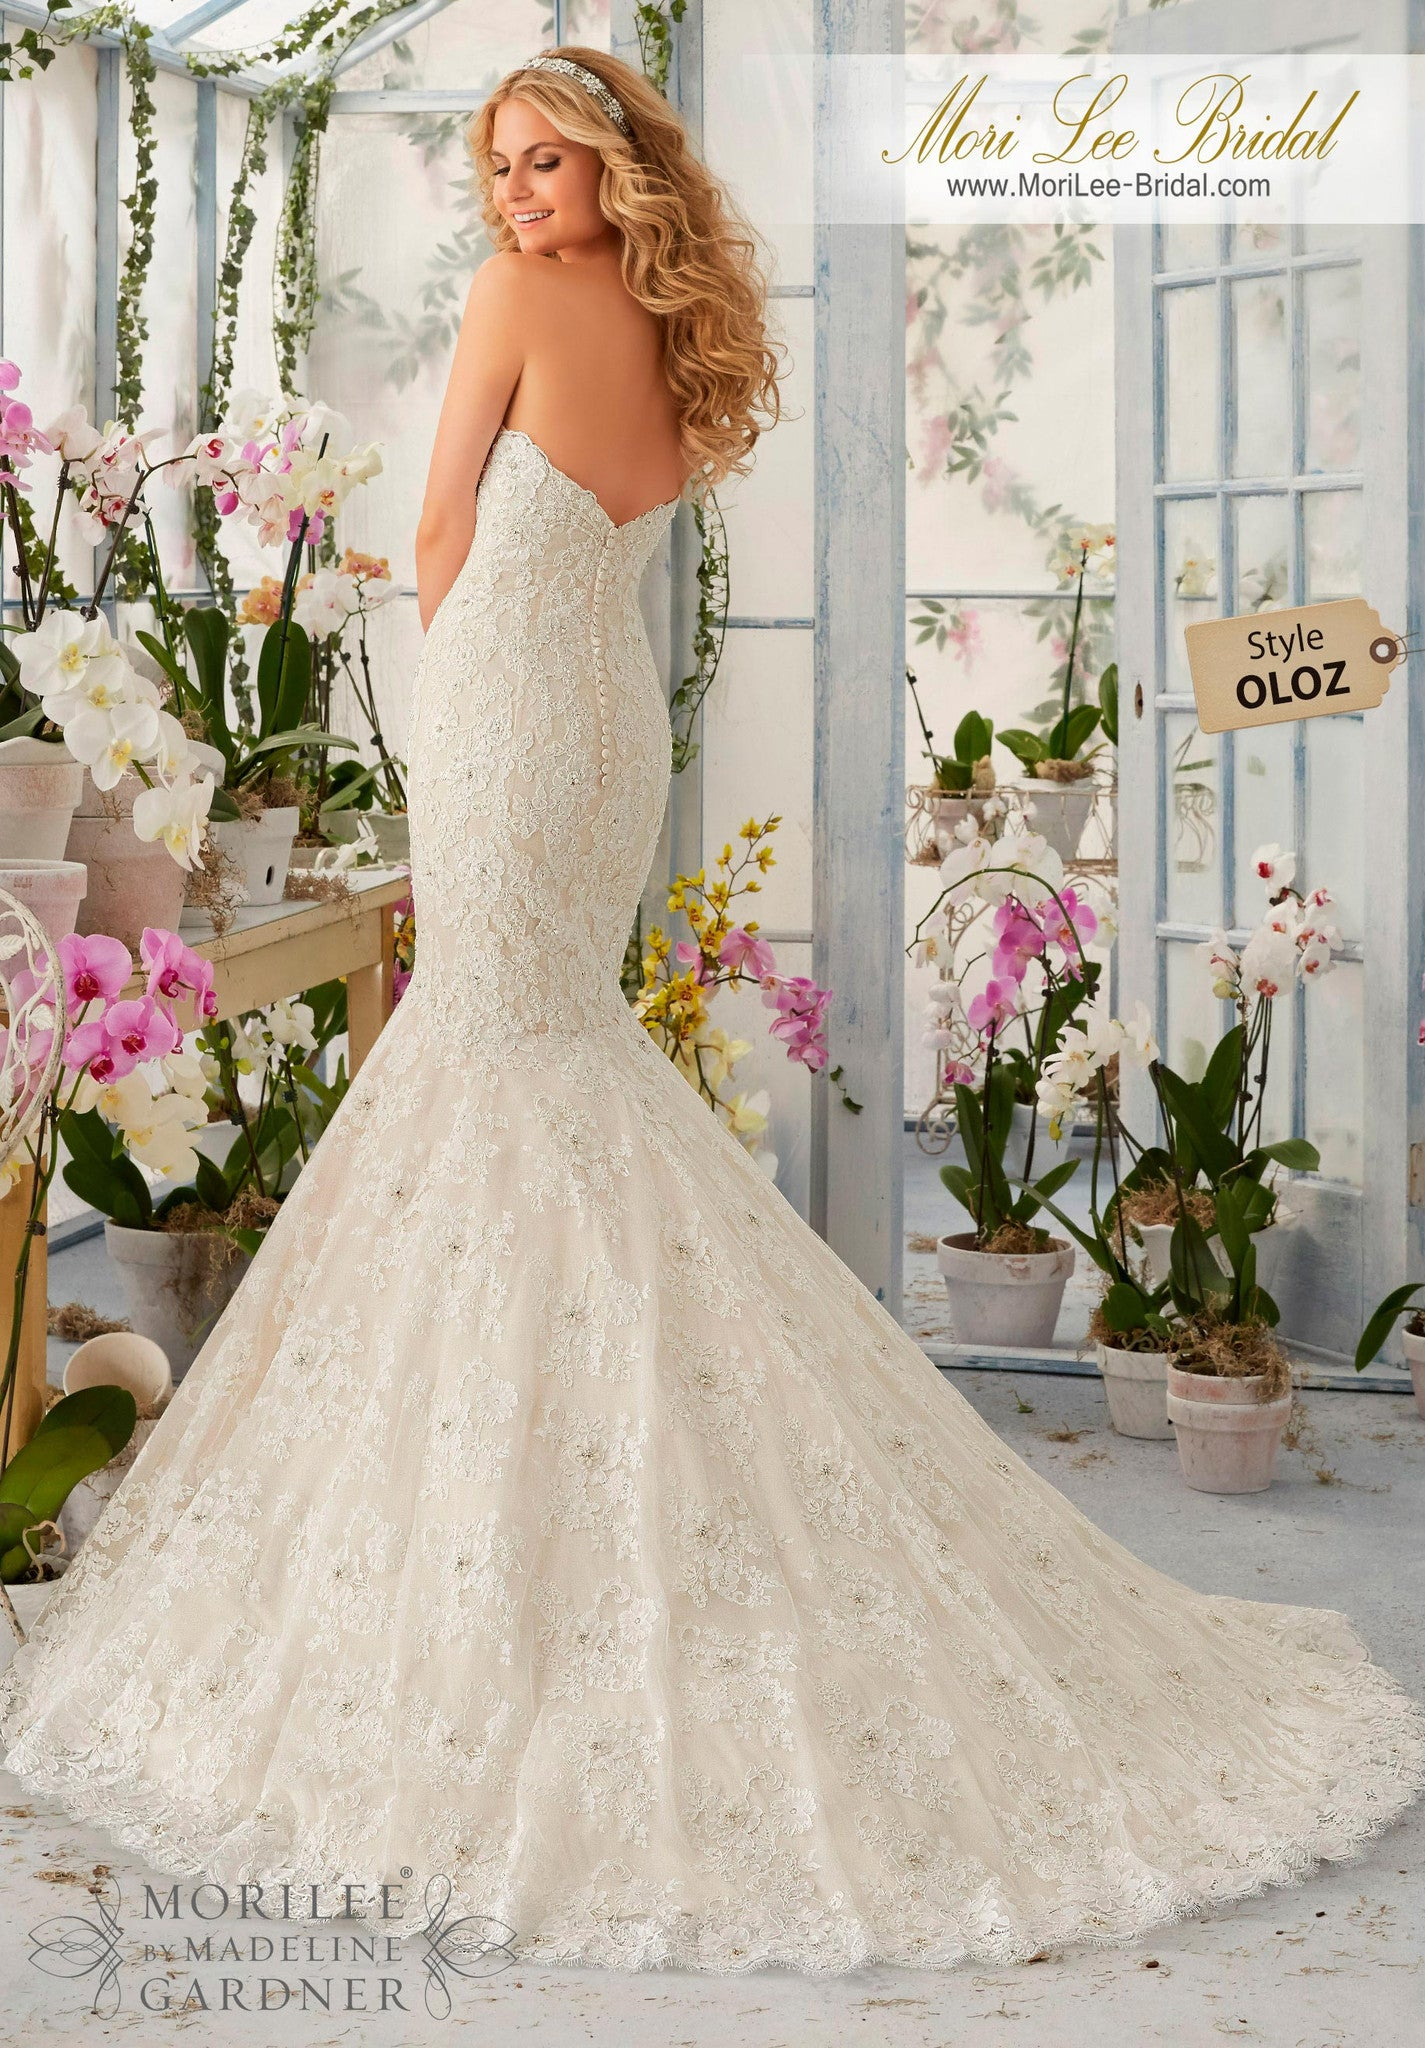 OLOZ - Mori Lee Bridal